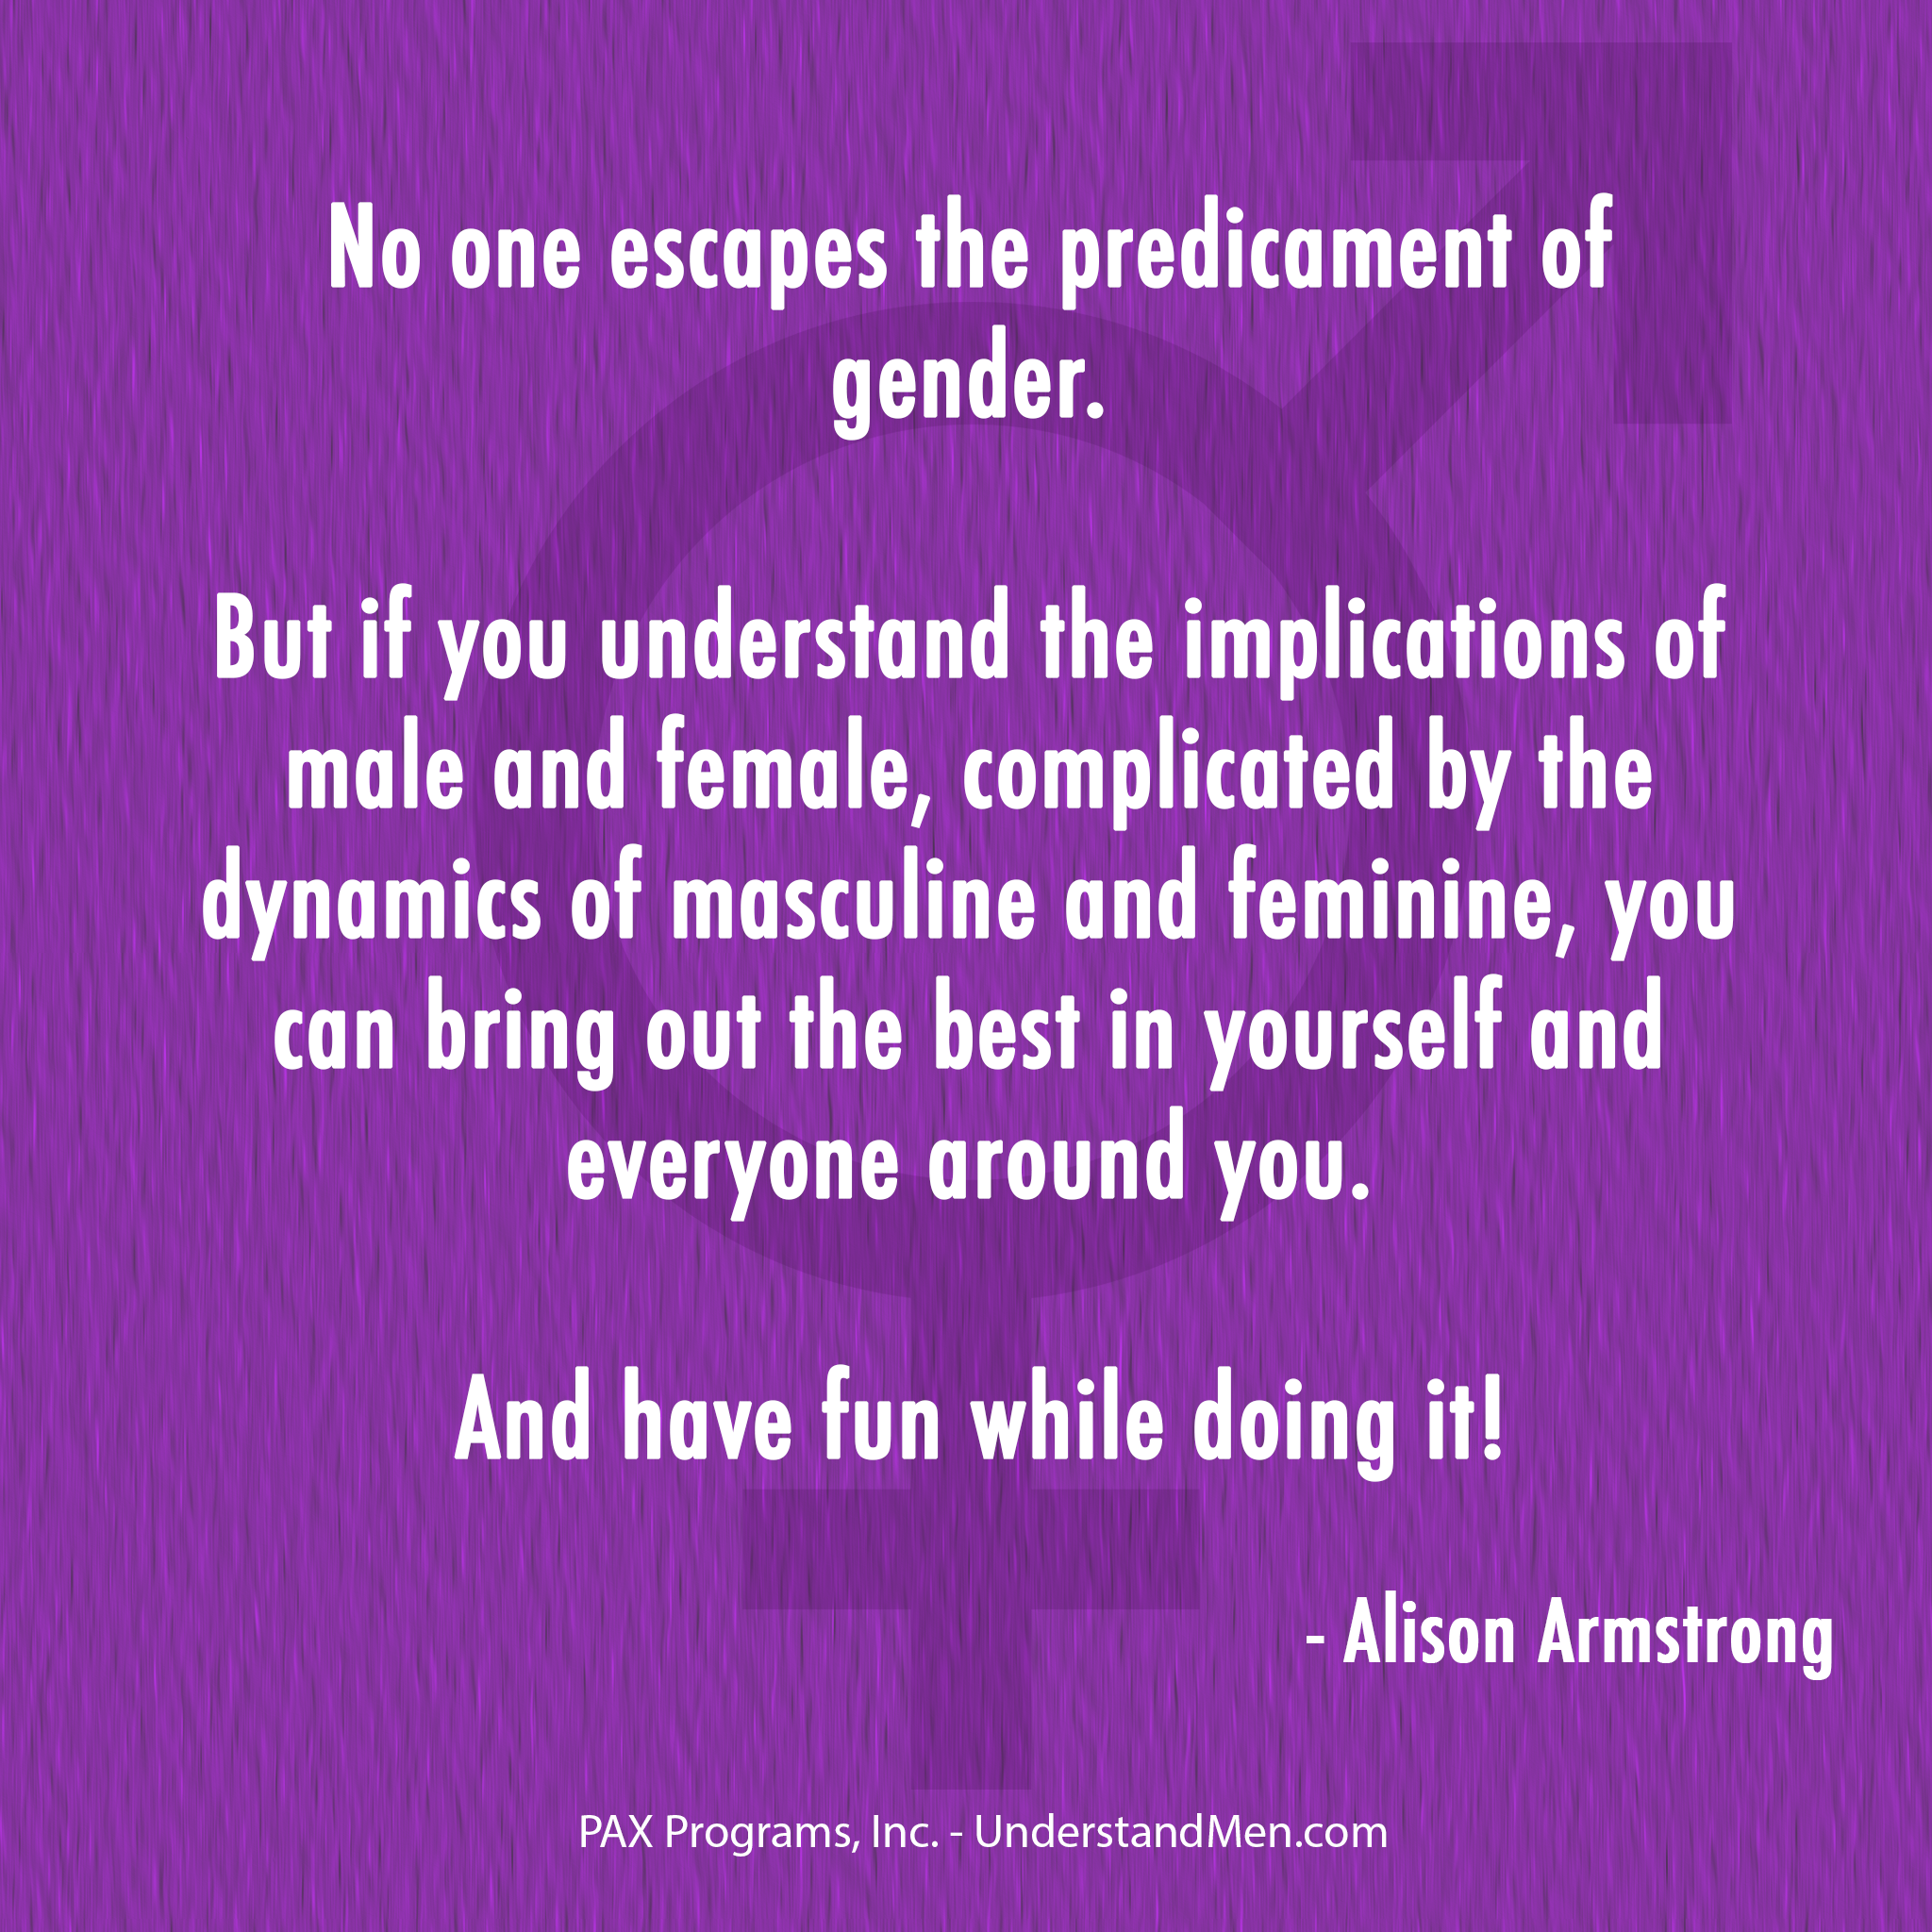 """No one escapes the predicament of gender. But if you understand the implications of male and female, complicated by the dynamics masculine and feminine, you can bring out the best in yourself and everyone around you. And have fun while doing it!"" ~ Alison Armstrong"